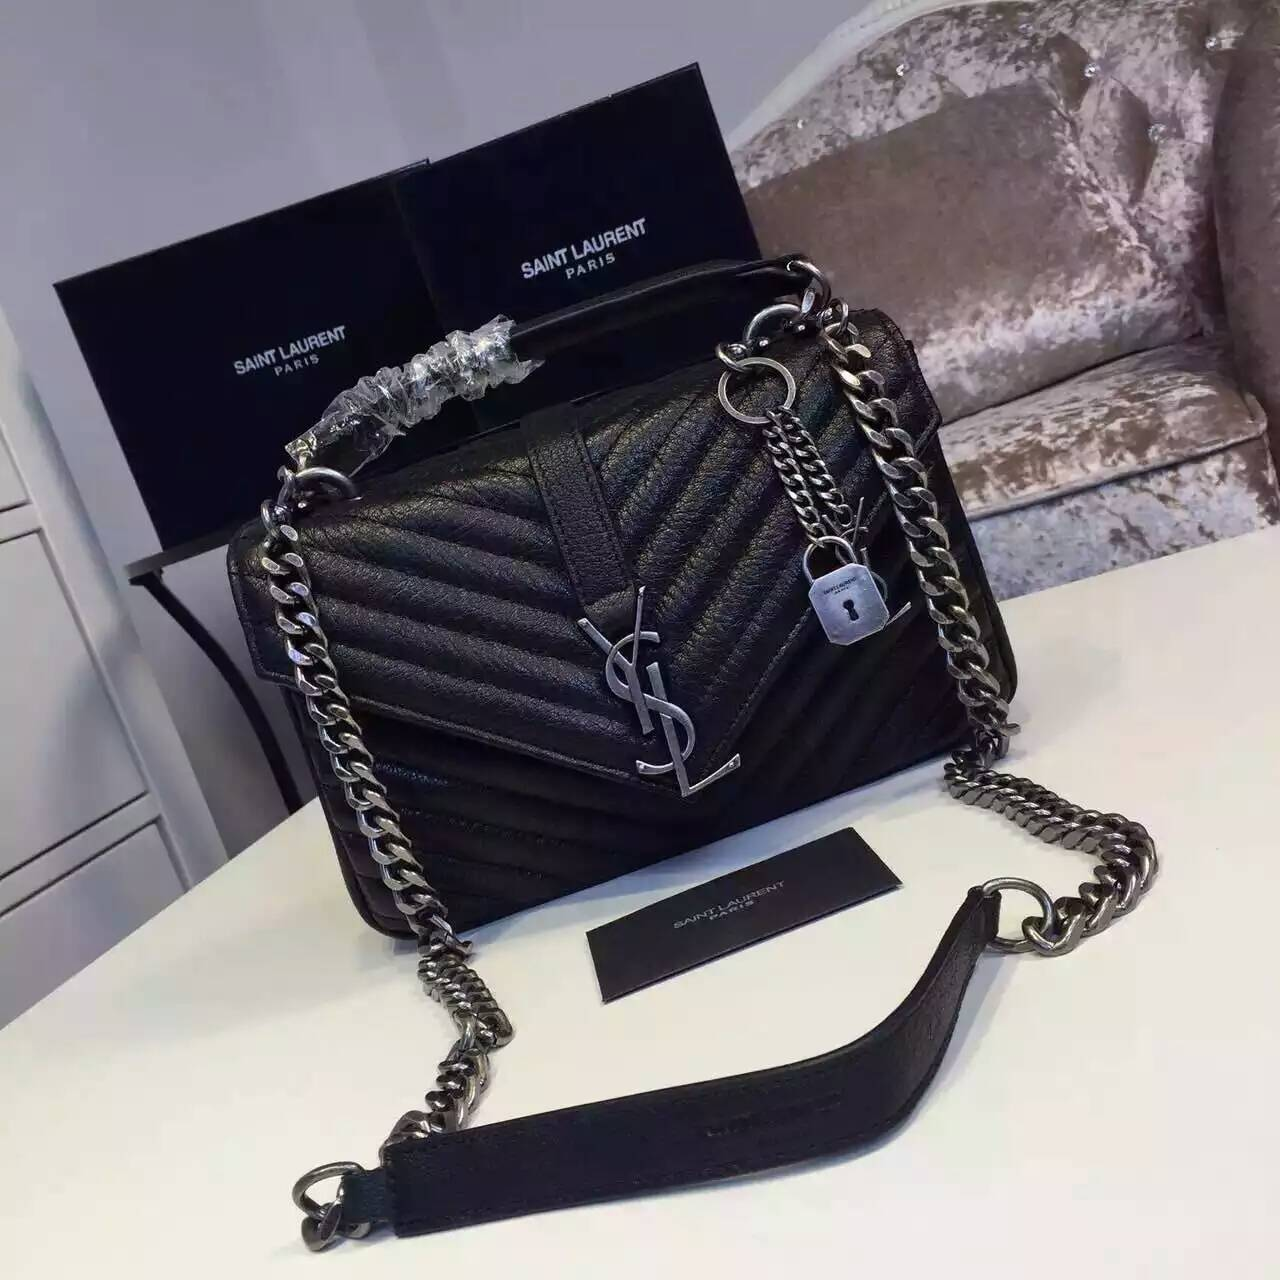 2016 New Saint Laurent Bag Cheap Sale-Saint Laurent Classic Medium COLLEGE MONOGRAM Bag in Black MATELASSE Leather